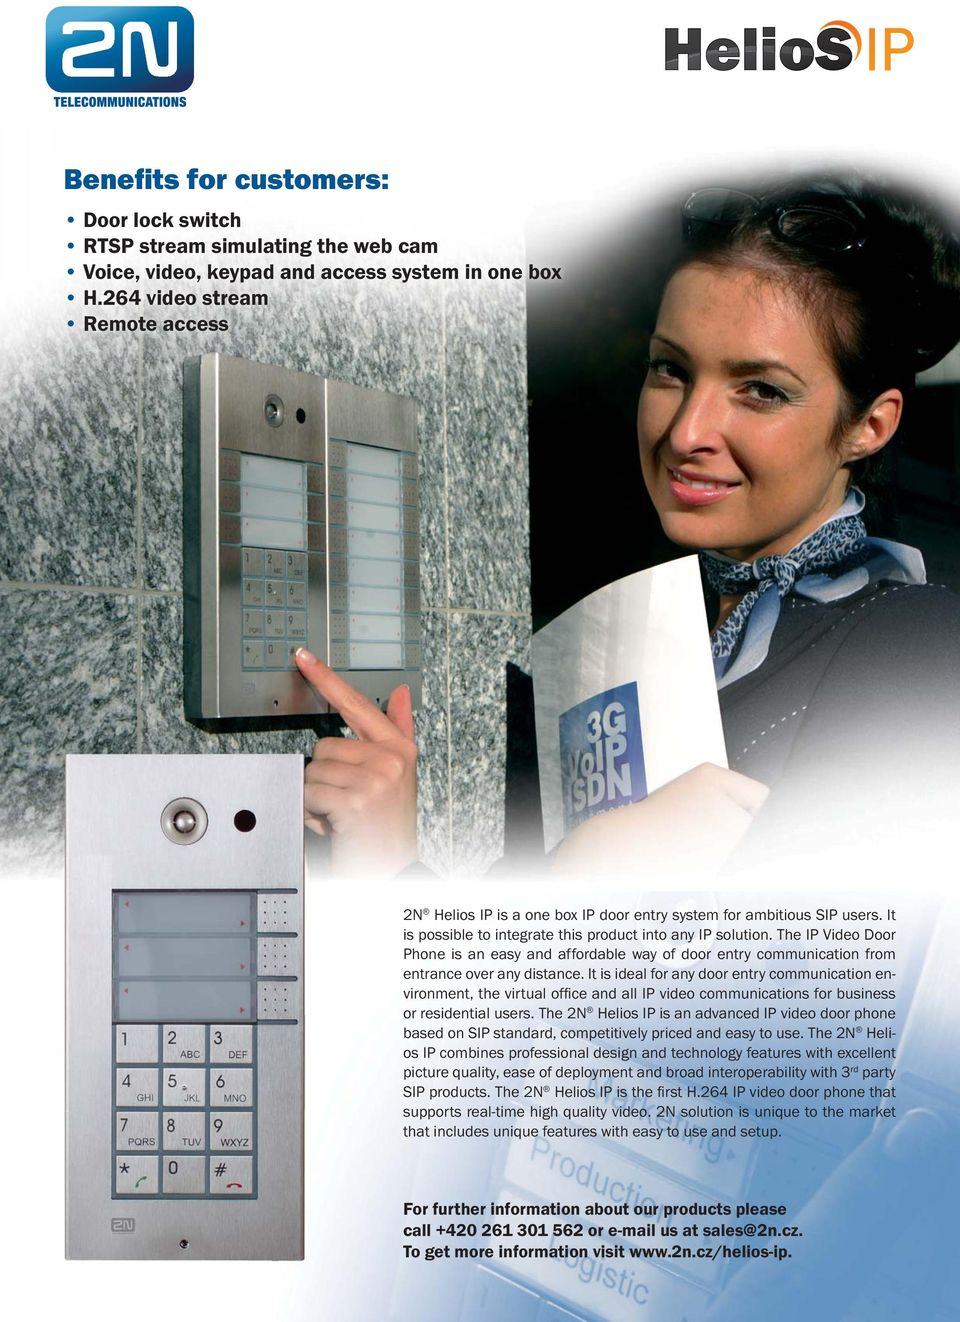 The IP Video Door Phone is an easy and affordable way of door entry communication from entrance over any distance.